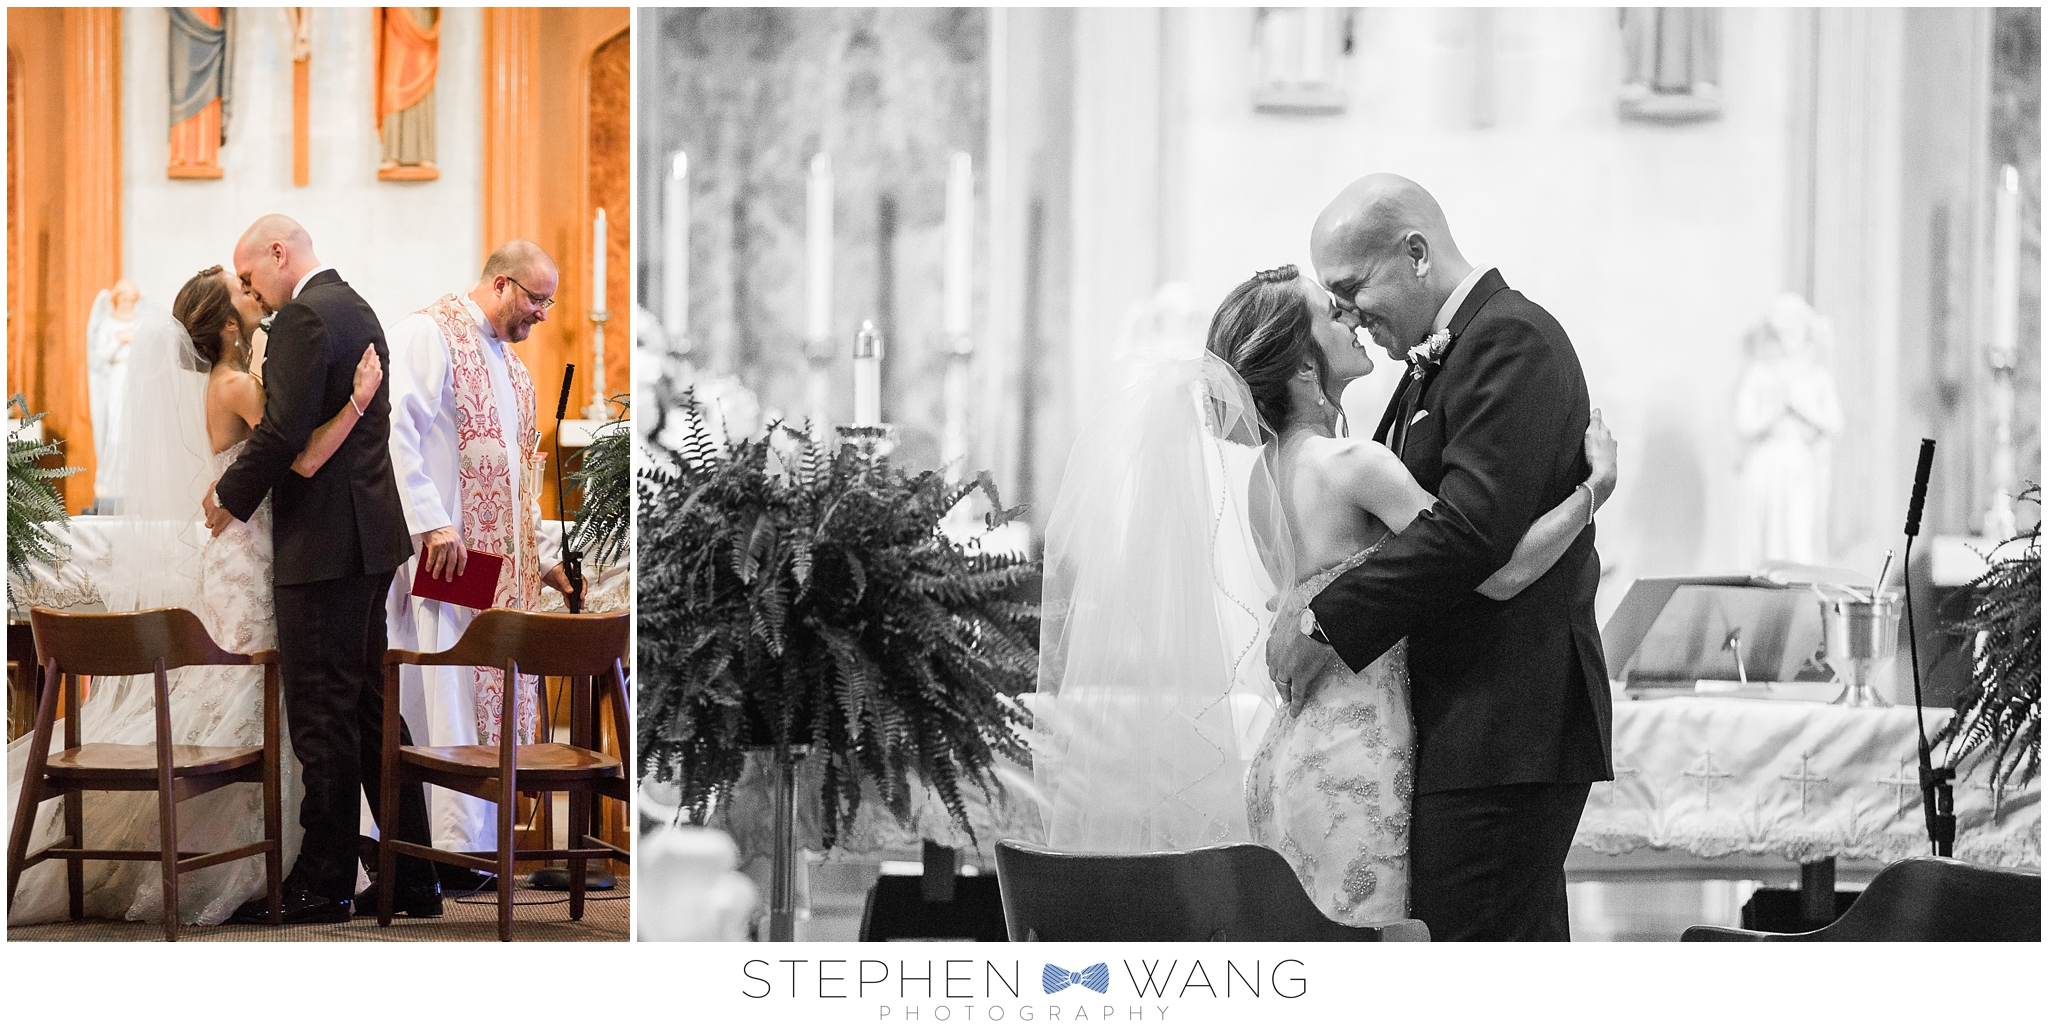 Stephen Wang Photography wedding photographer whitby castle wedding rye ny connecticut photographer philadlephia photographer pennsylvania wedding photographer bride and groom00017.jpg